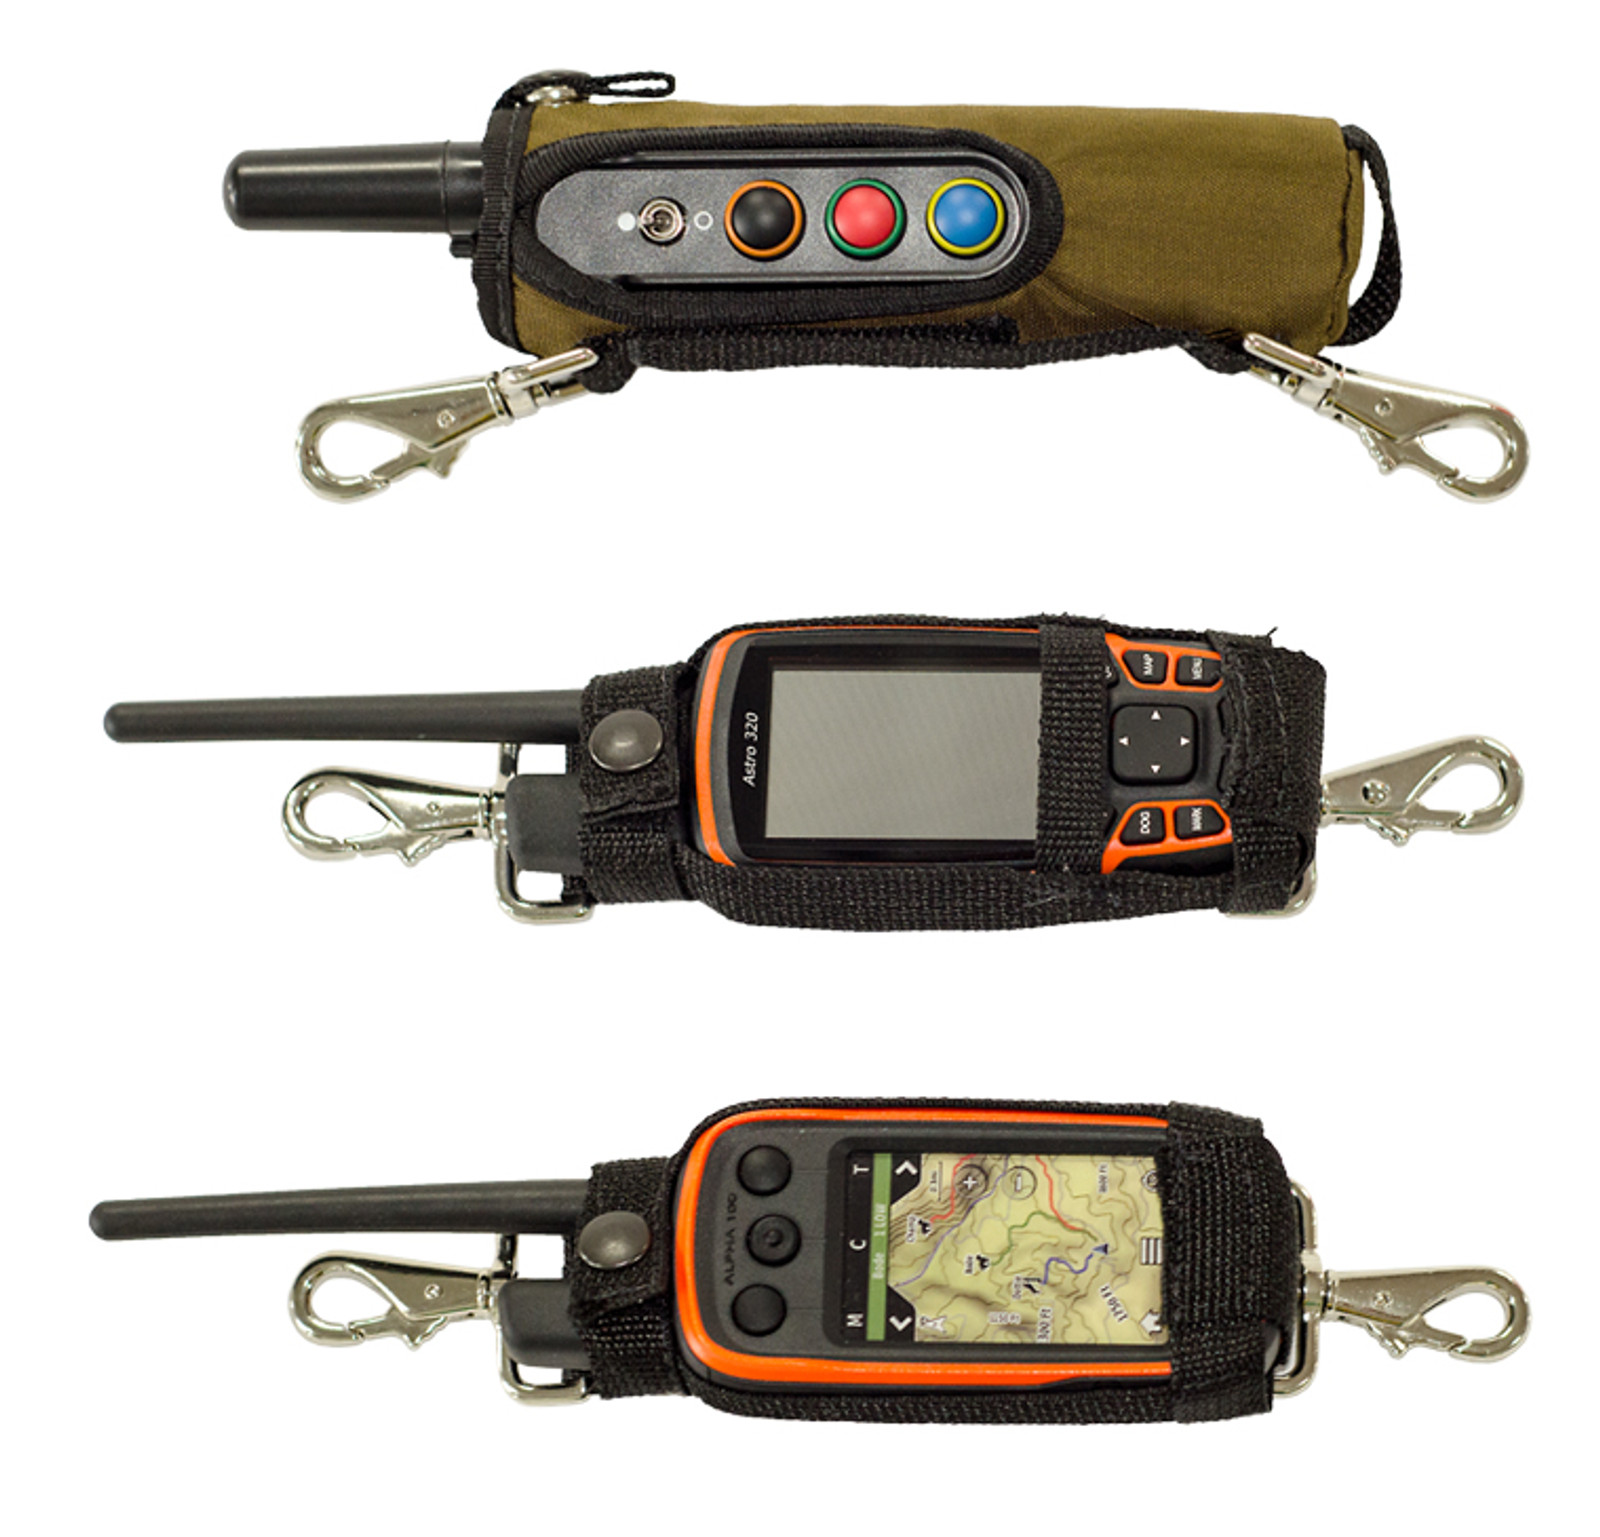 Tri-Tronic, Astro, and Alpha Unit HC Holder by Dan's Hunting Gear I Briarproof Super Store